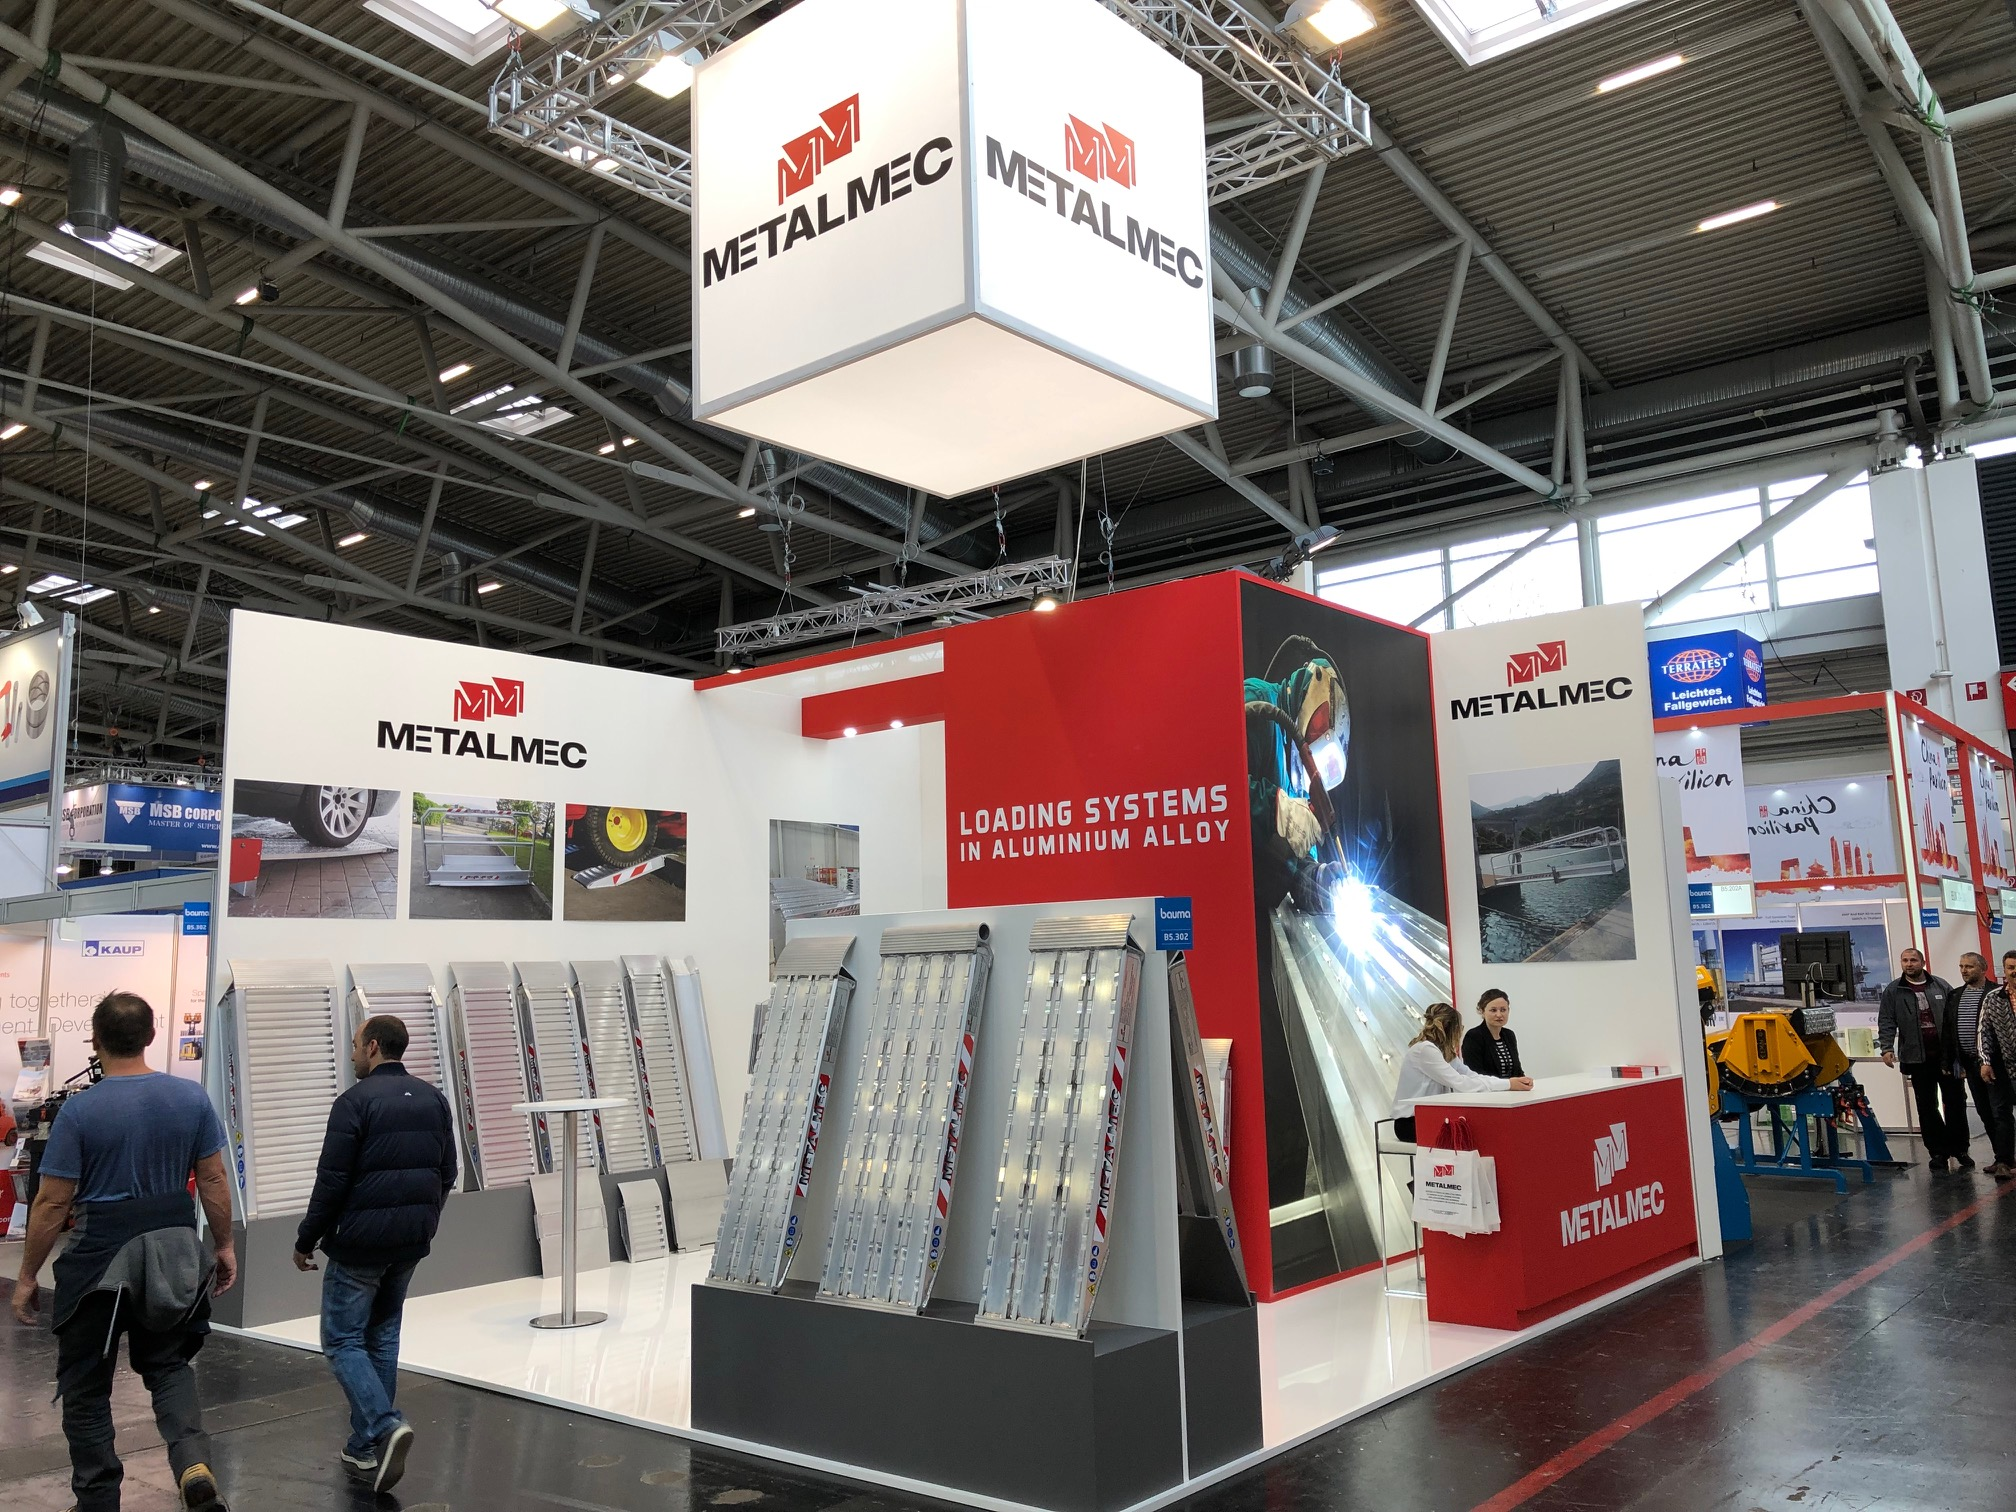 BAUMA 2019: HERE WE ARE!